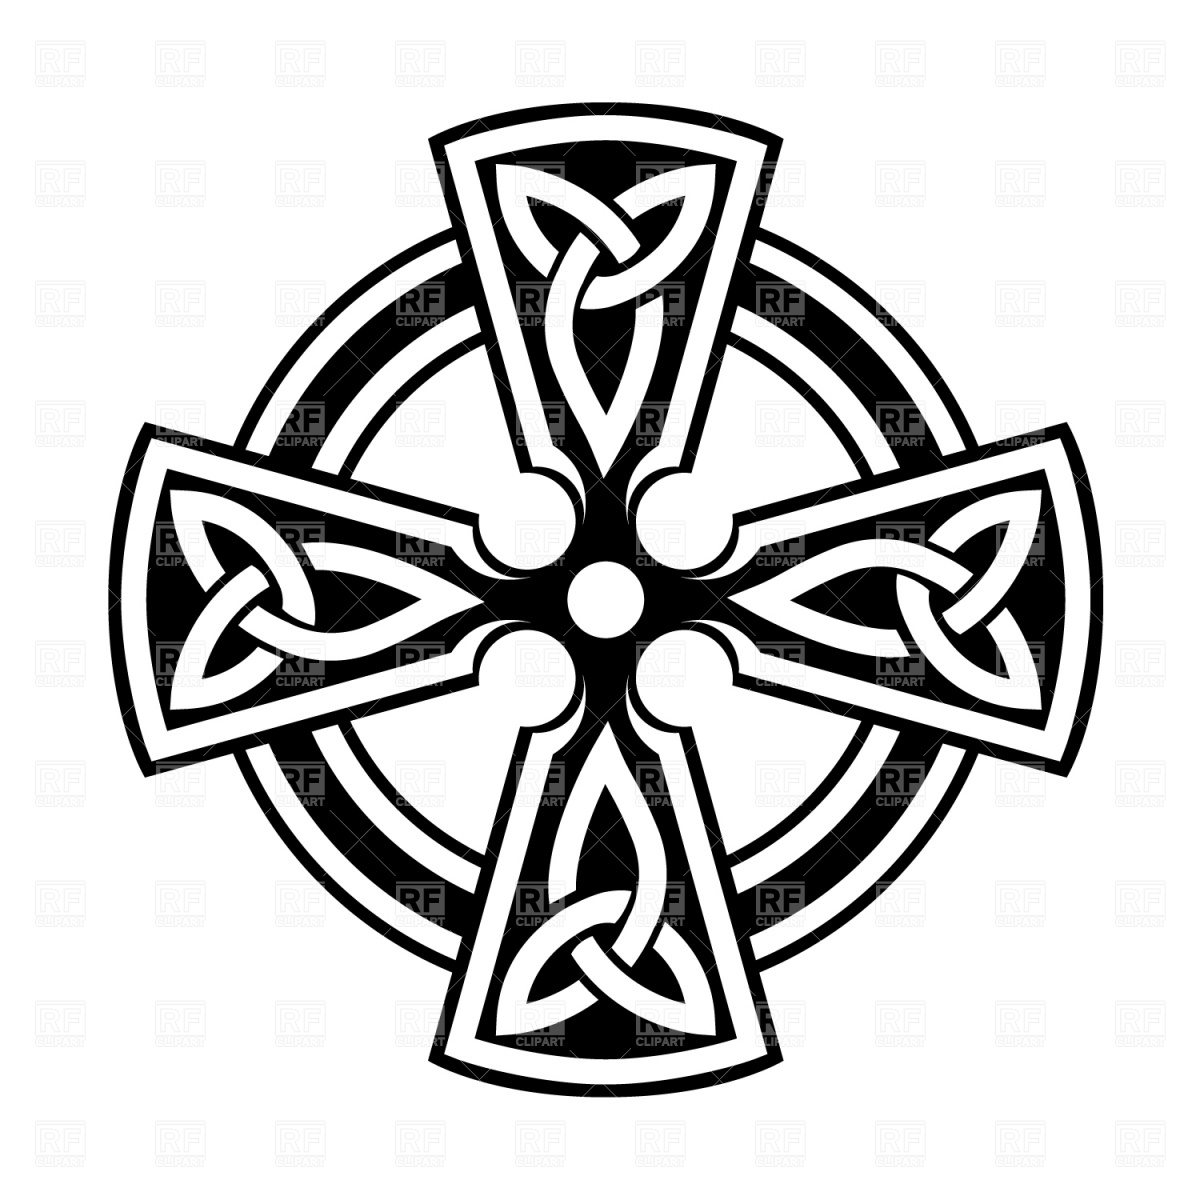 Roman Catholic Cross Designs Free Download Best Roman Catholic